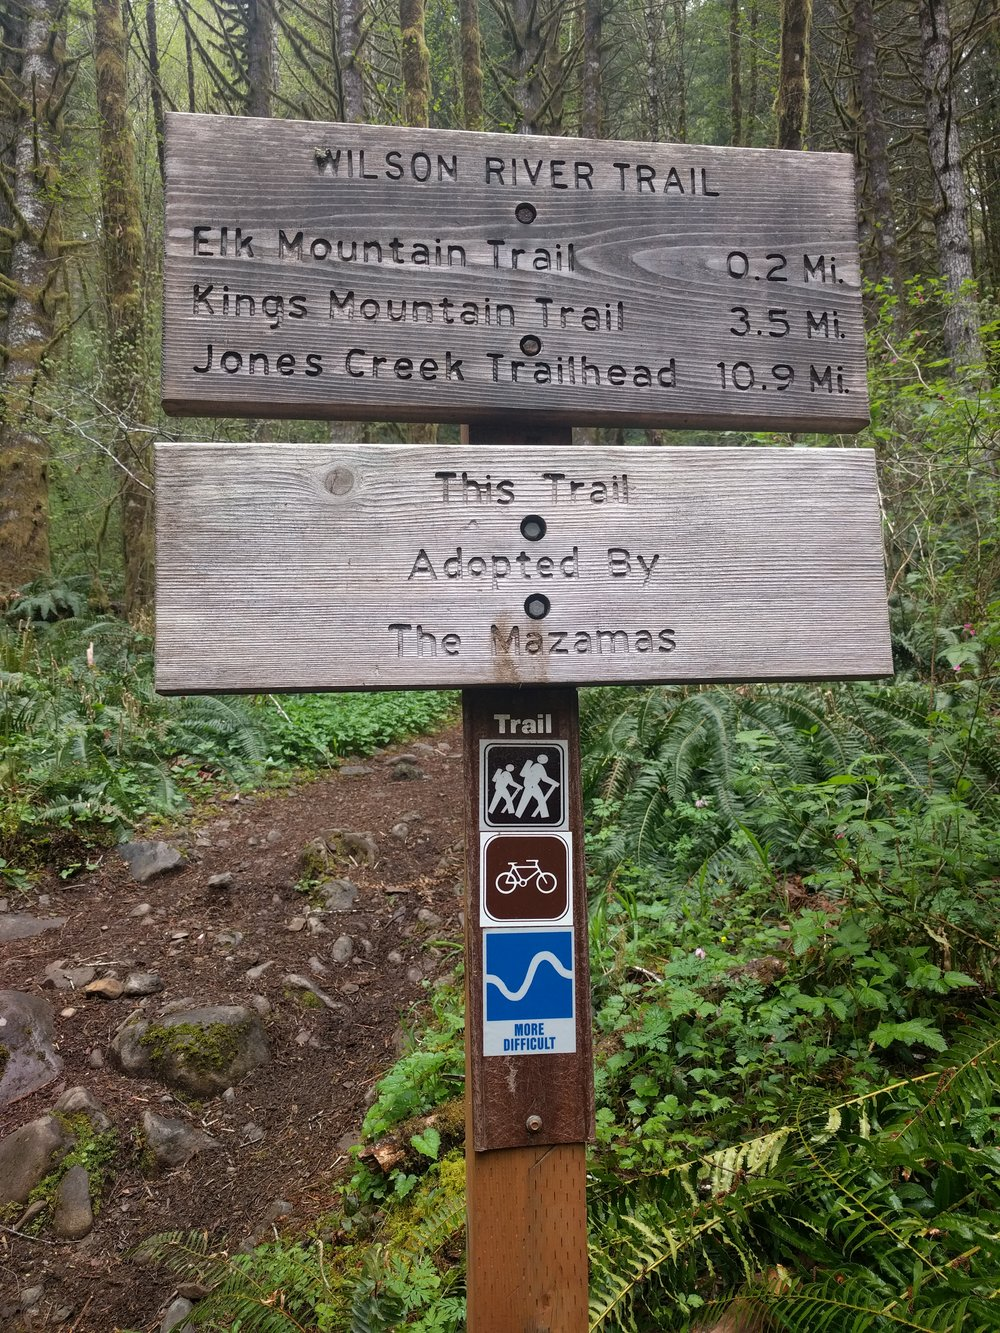 As you can see, no mention of the Elk Creek trail yet. (The Elk Mountain trail is a different trail!)